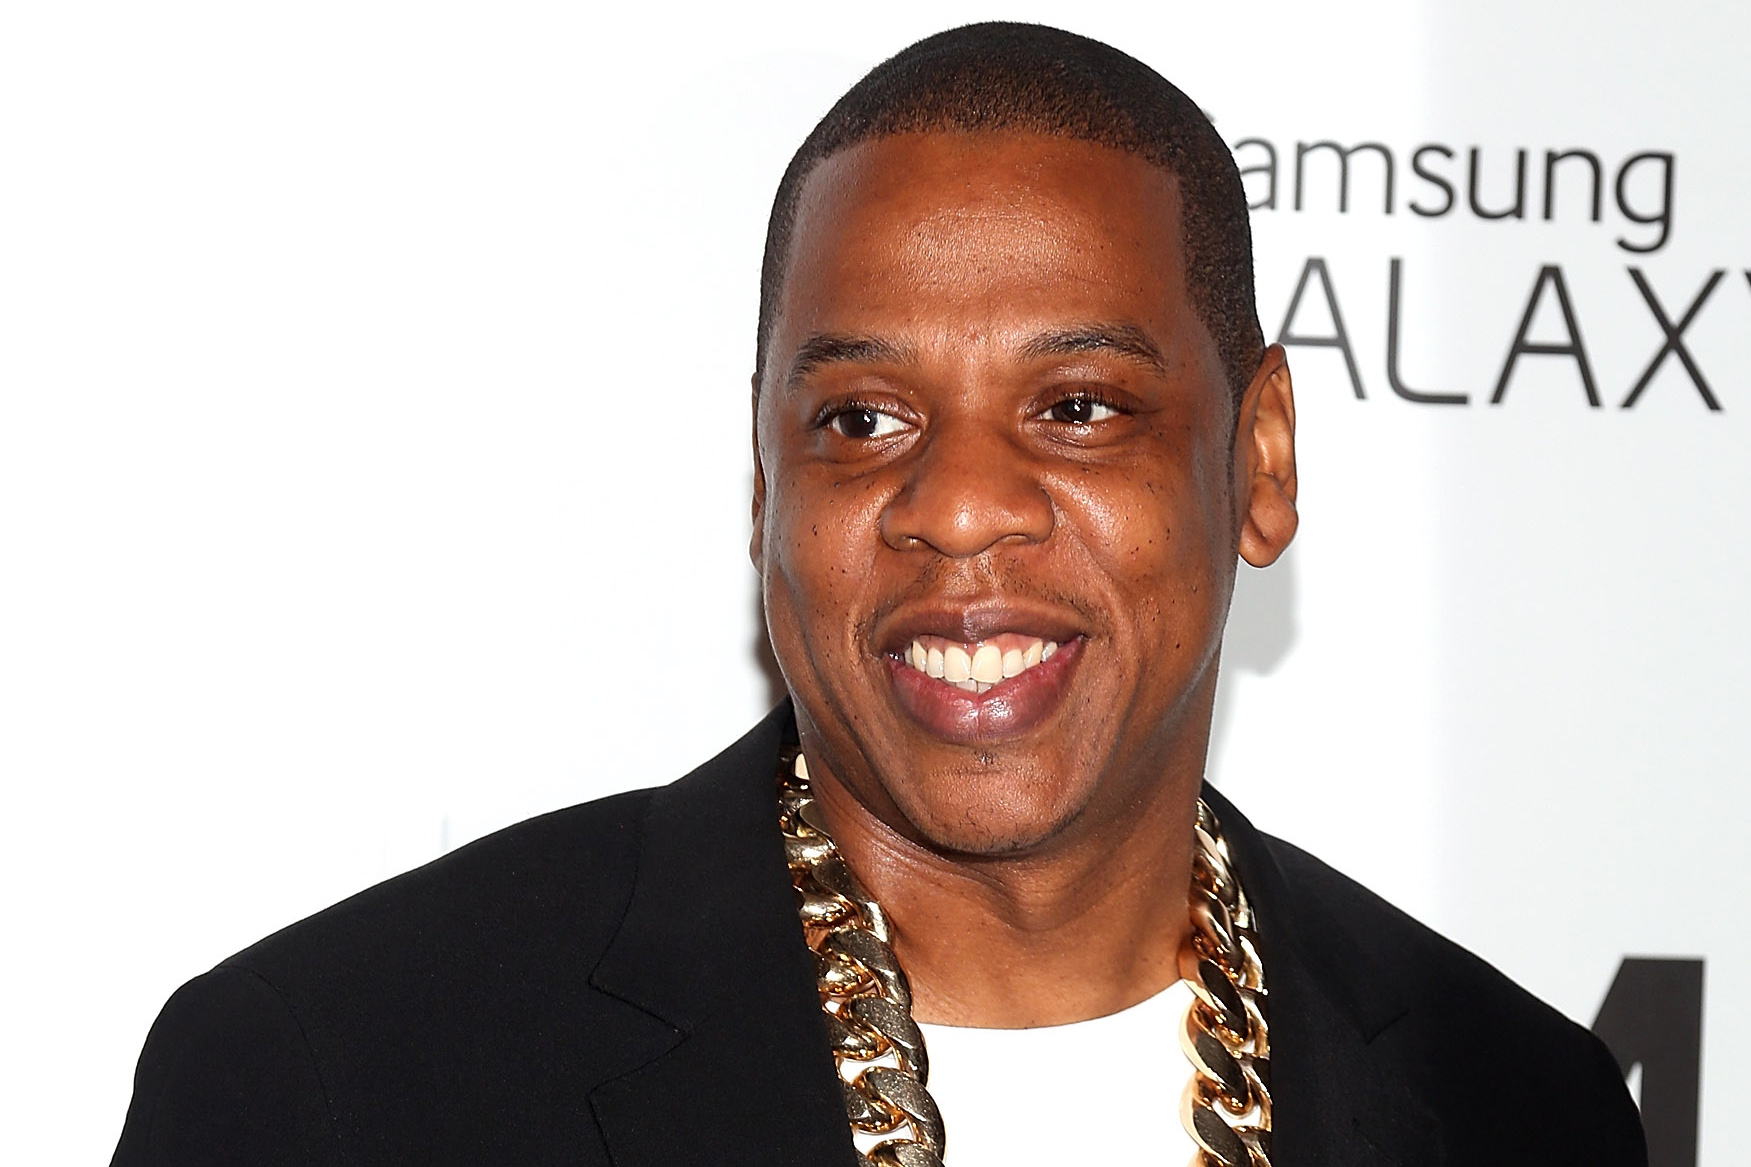 Jay Z Net Worth, Age, Height, Wife, Profile, Songs